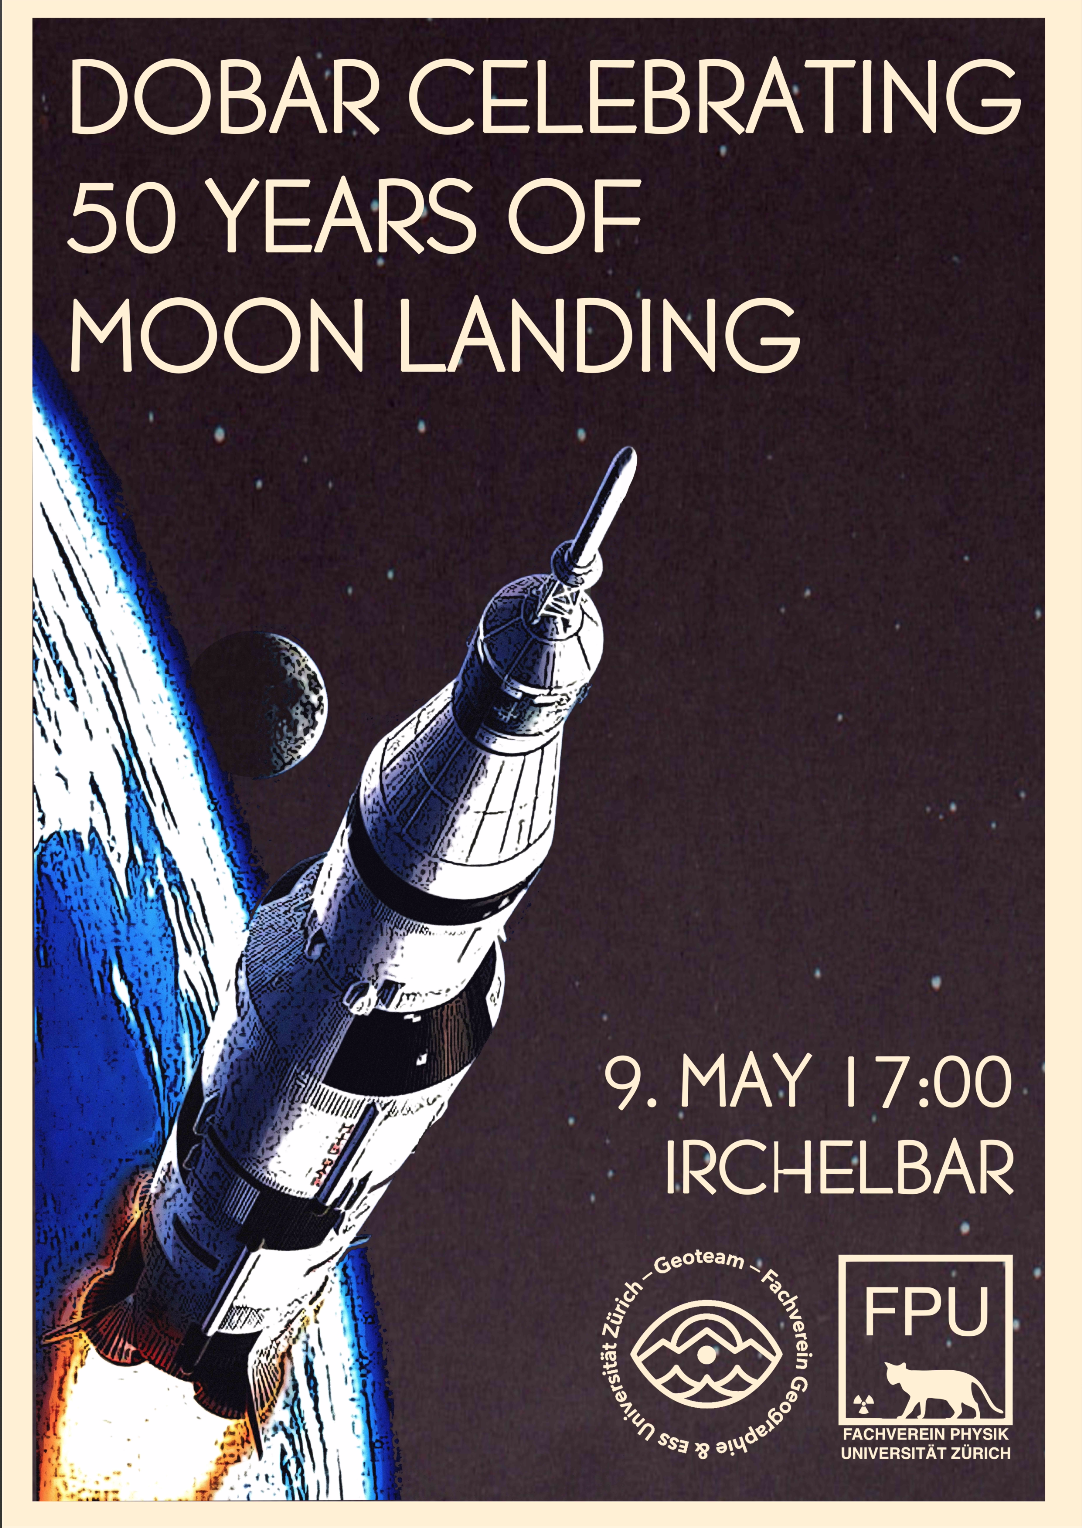 DoBar Celebrating 50 Years of Moonlanding, 9.May 17:00, Irchelbar